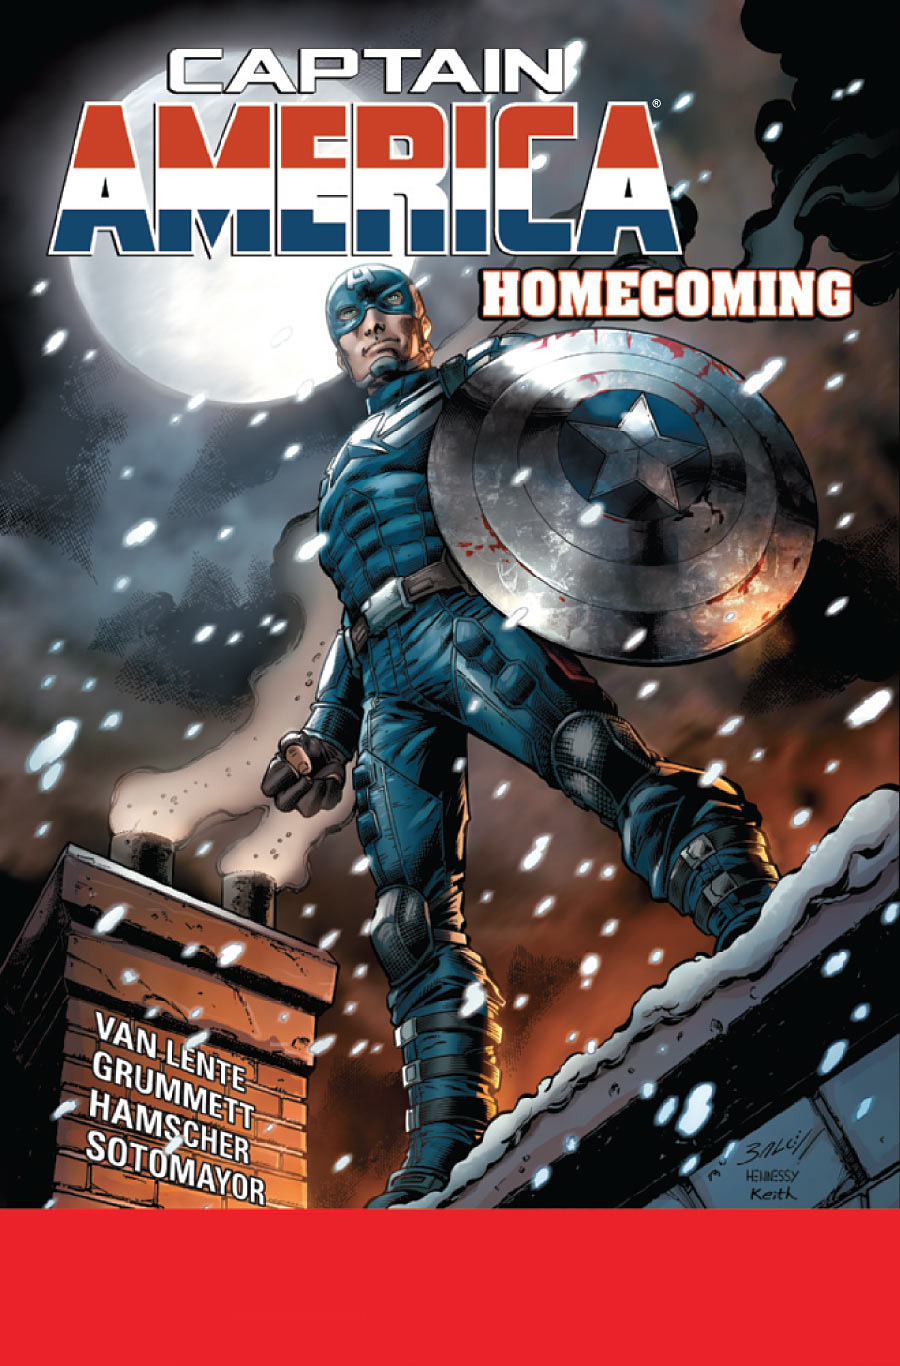 Caphomecoming